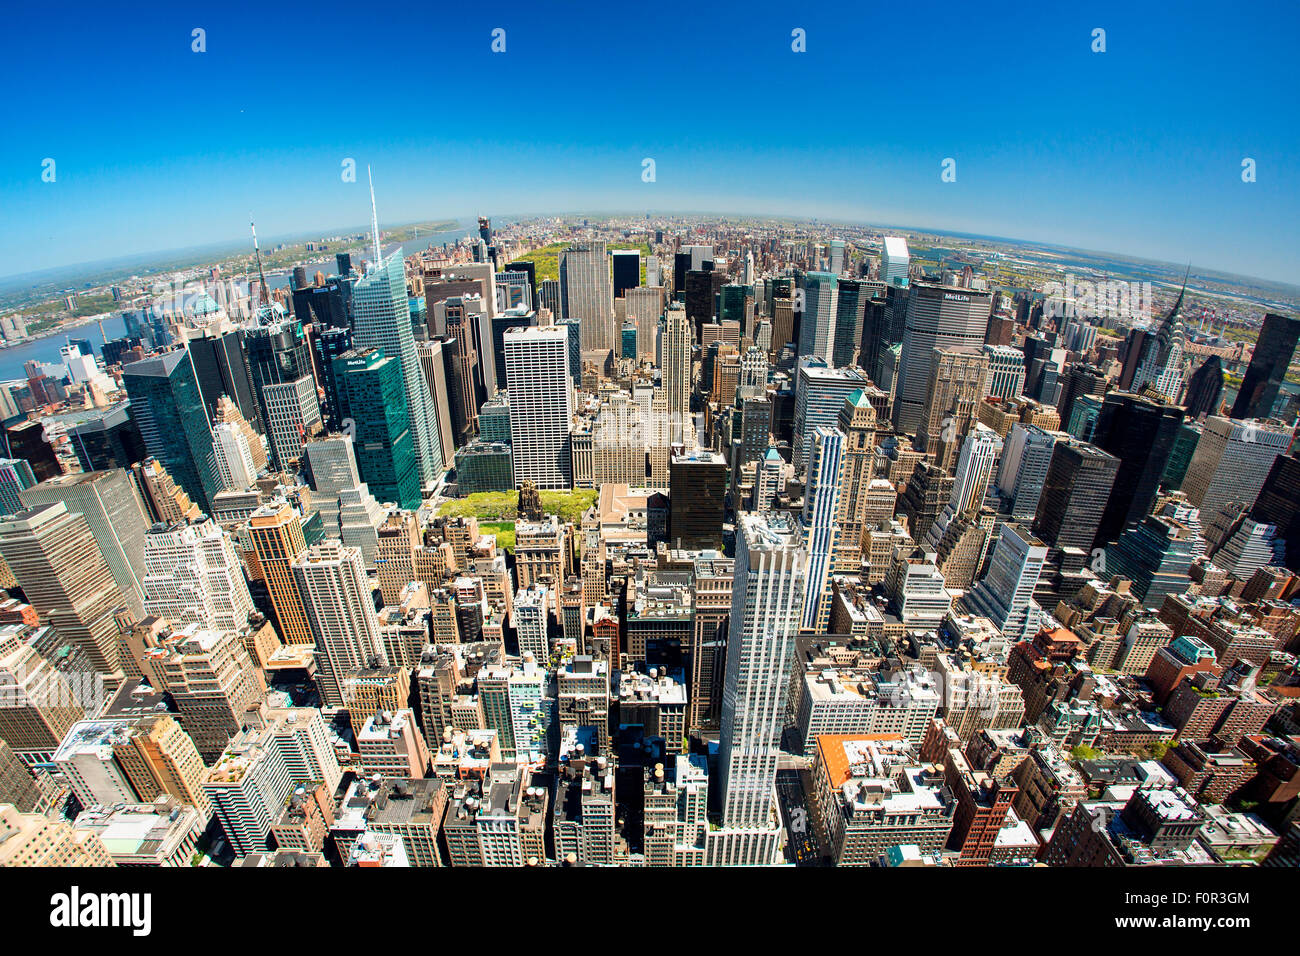 New York City Skyline - Stock Image